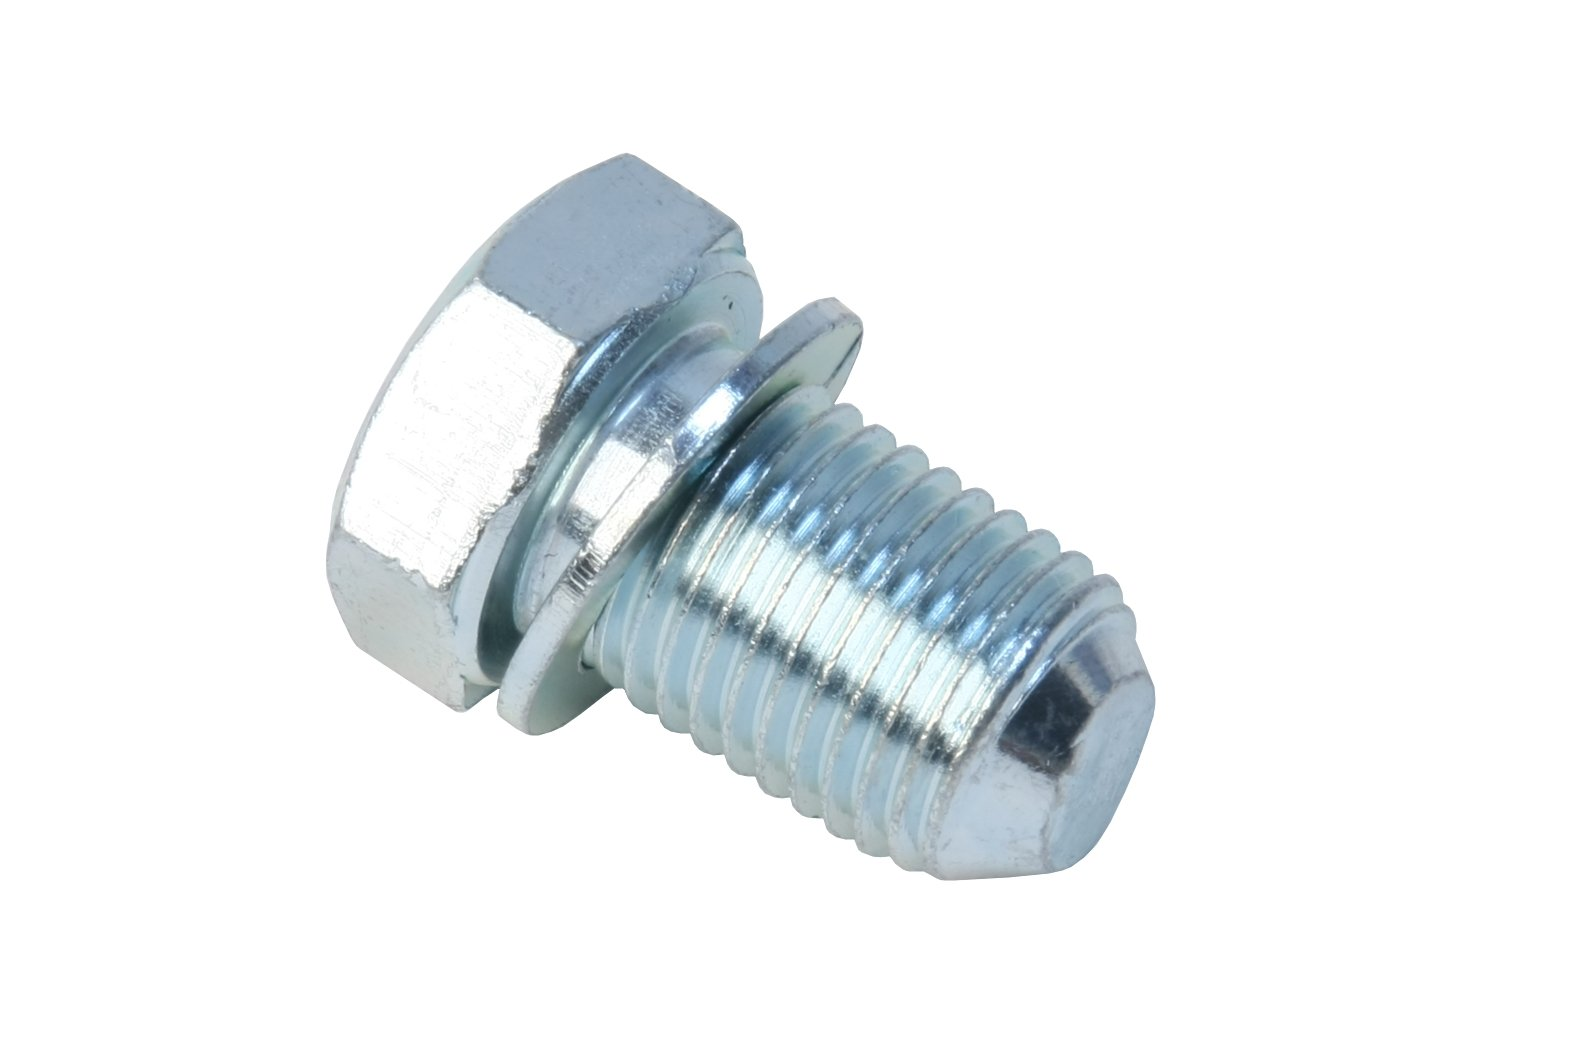 URO Parts N90813202 Oil Drain Plug, 14mm x 22mm x 1.5 mm